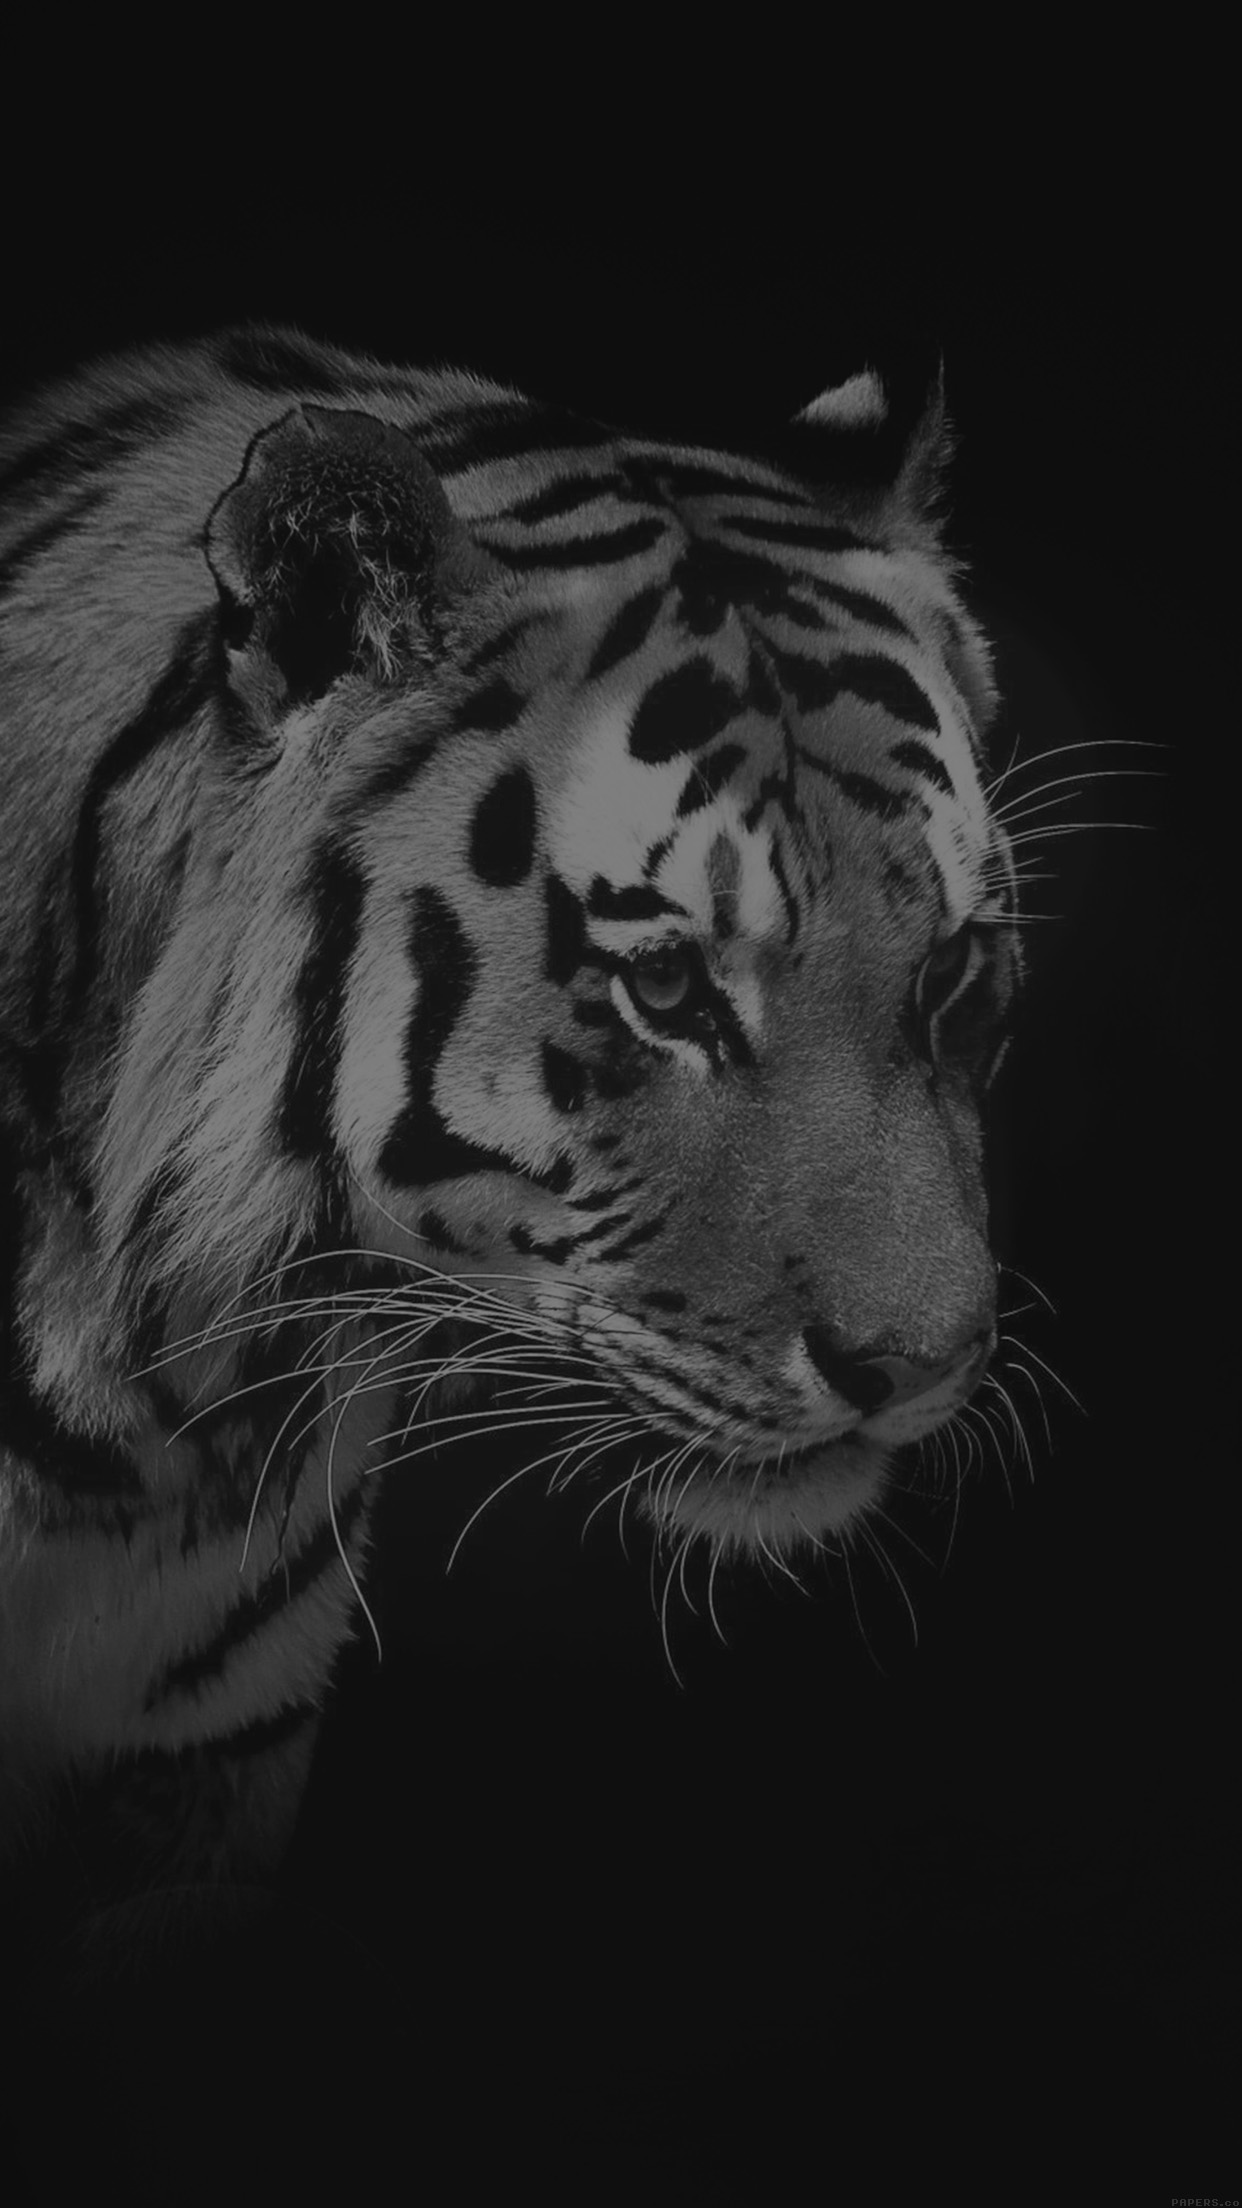 Tiger Dark Bw Animal Love Nature Android Wallpaper Android